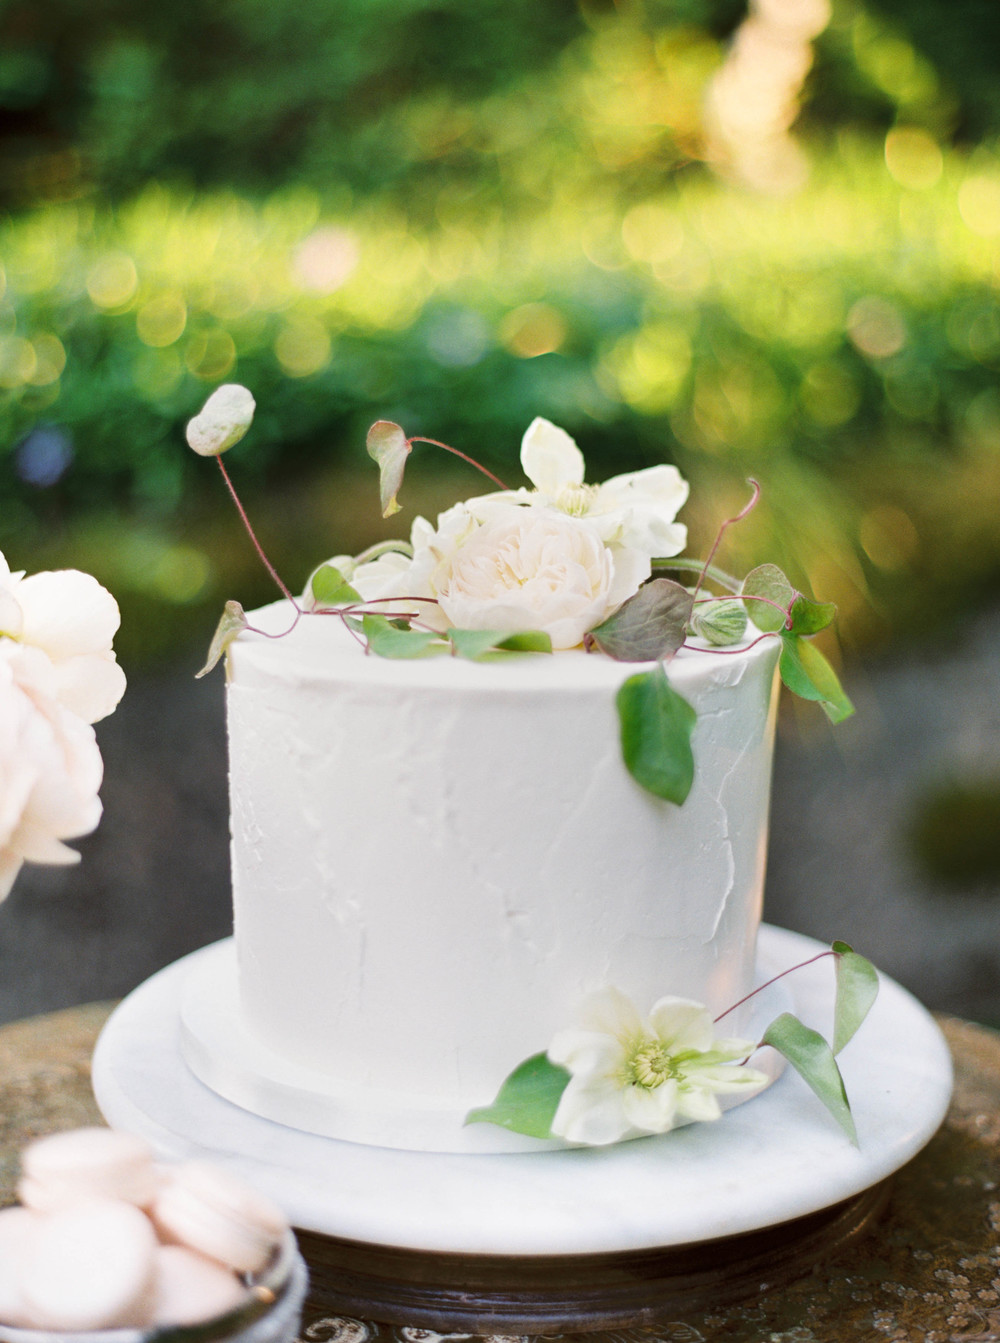 Floral cake-outdoor reception-rustic inspiration-simple wedding-white flowers-wedding greenery-wedding cake-